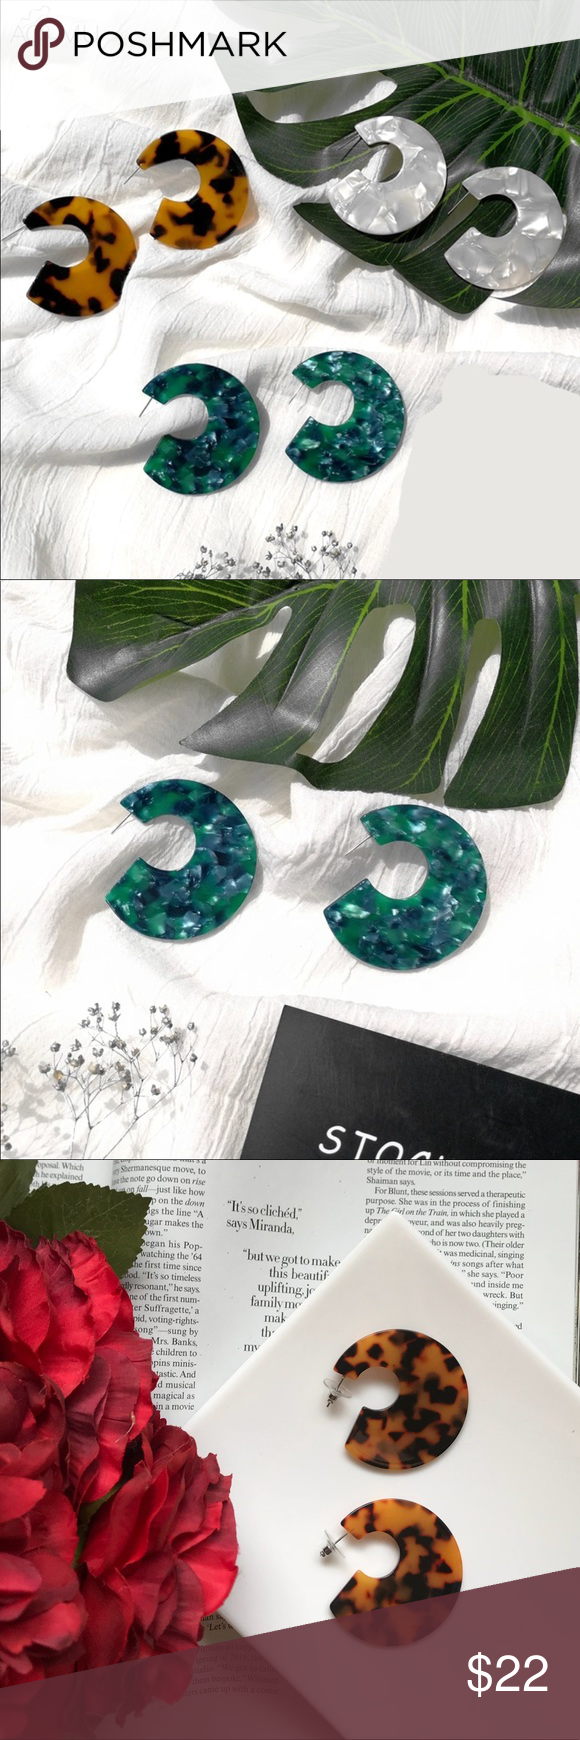 3527755f171 Green Tortoise Round Acrylic Earrings Brand New Boutique Item Tortoise  leopard like brown round circle earrings